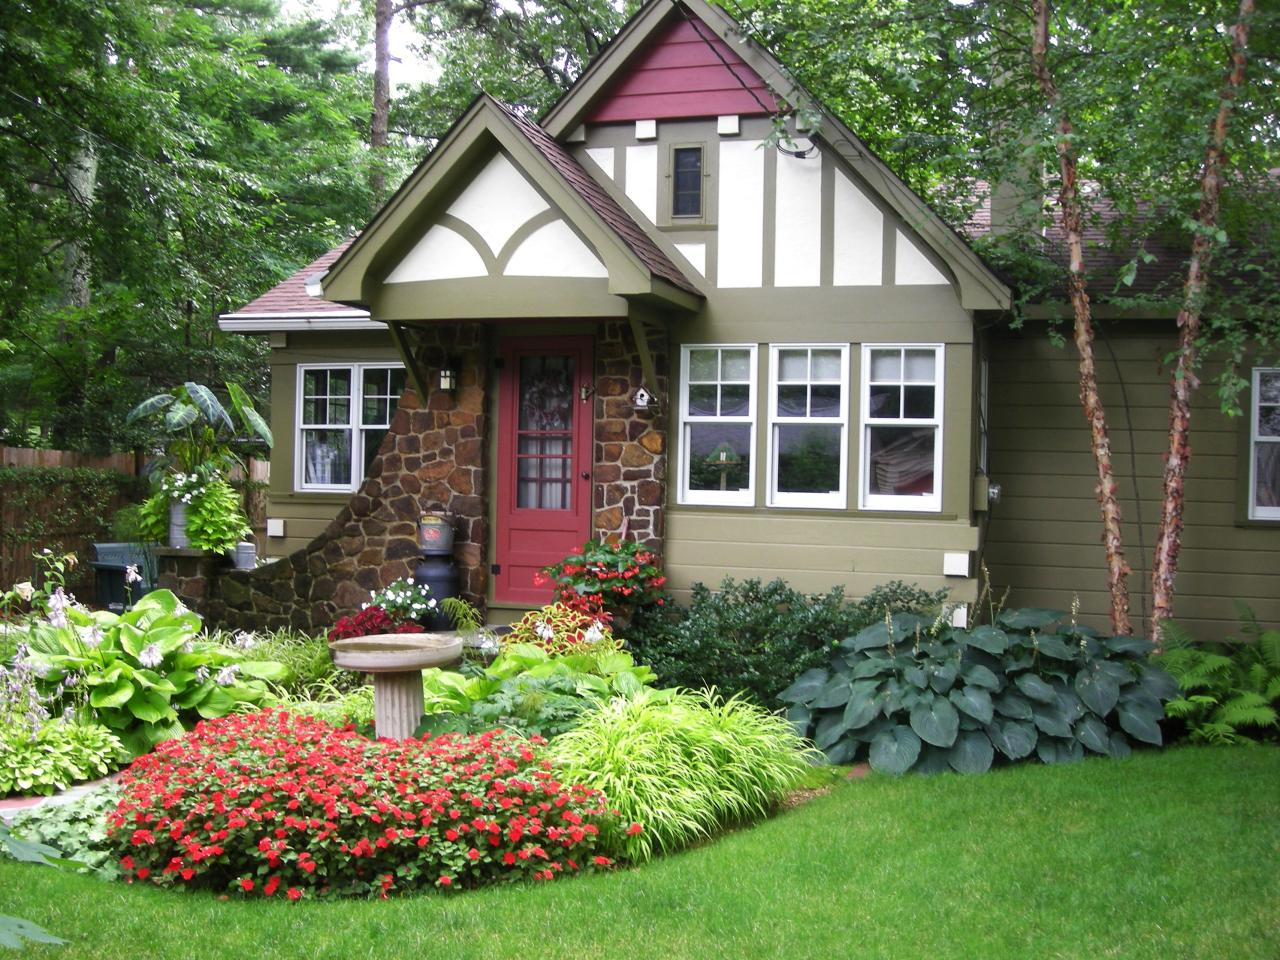 Home Landscaping Ideas Of Photos Hgtv